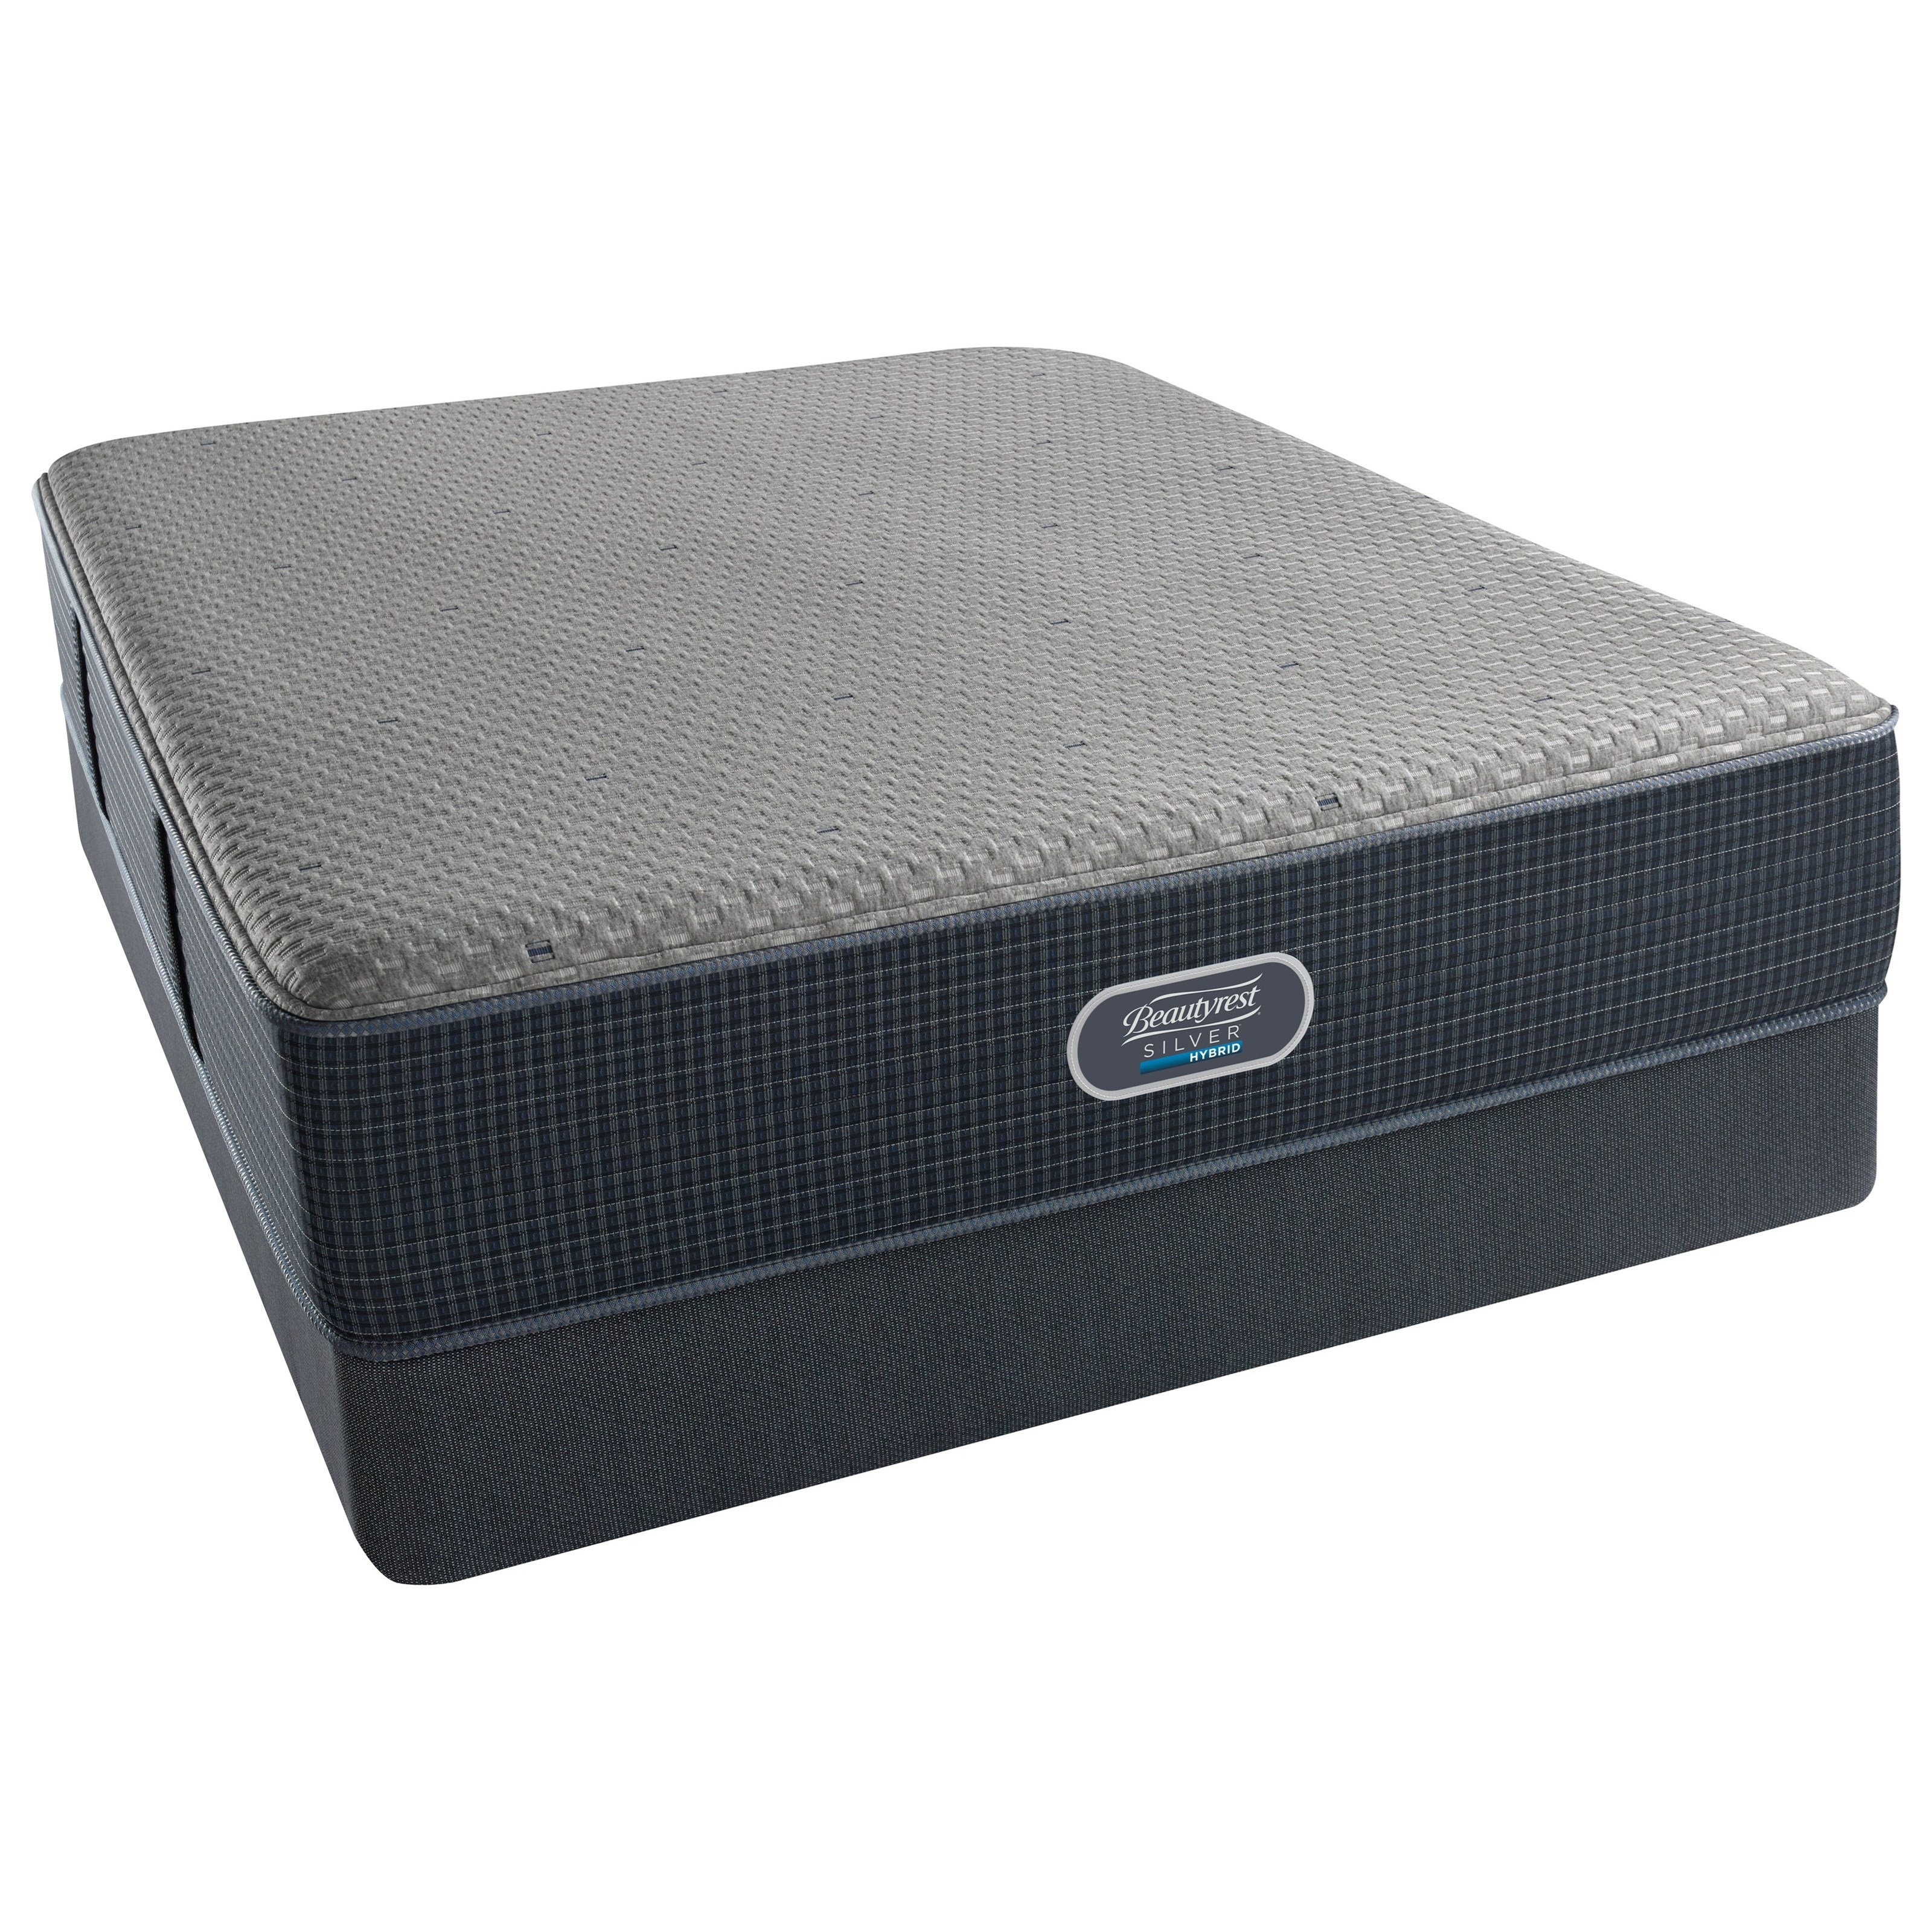 Beautyrest Silver Hybrid Austin Reef Plush Beautyrest Silver Queen Set - Item Number: 700601001-1050+700600254-5050